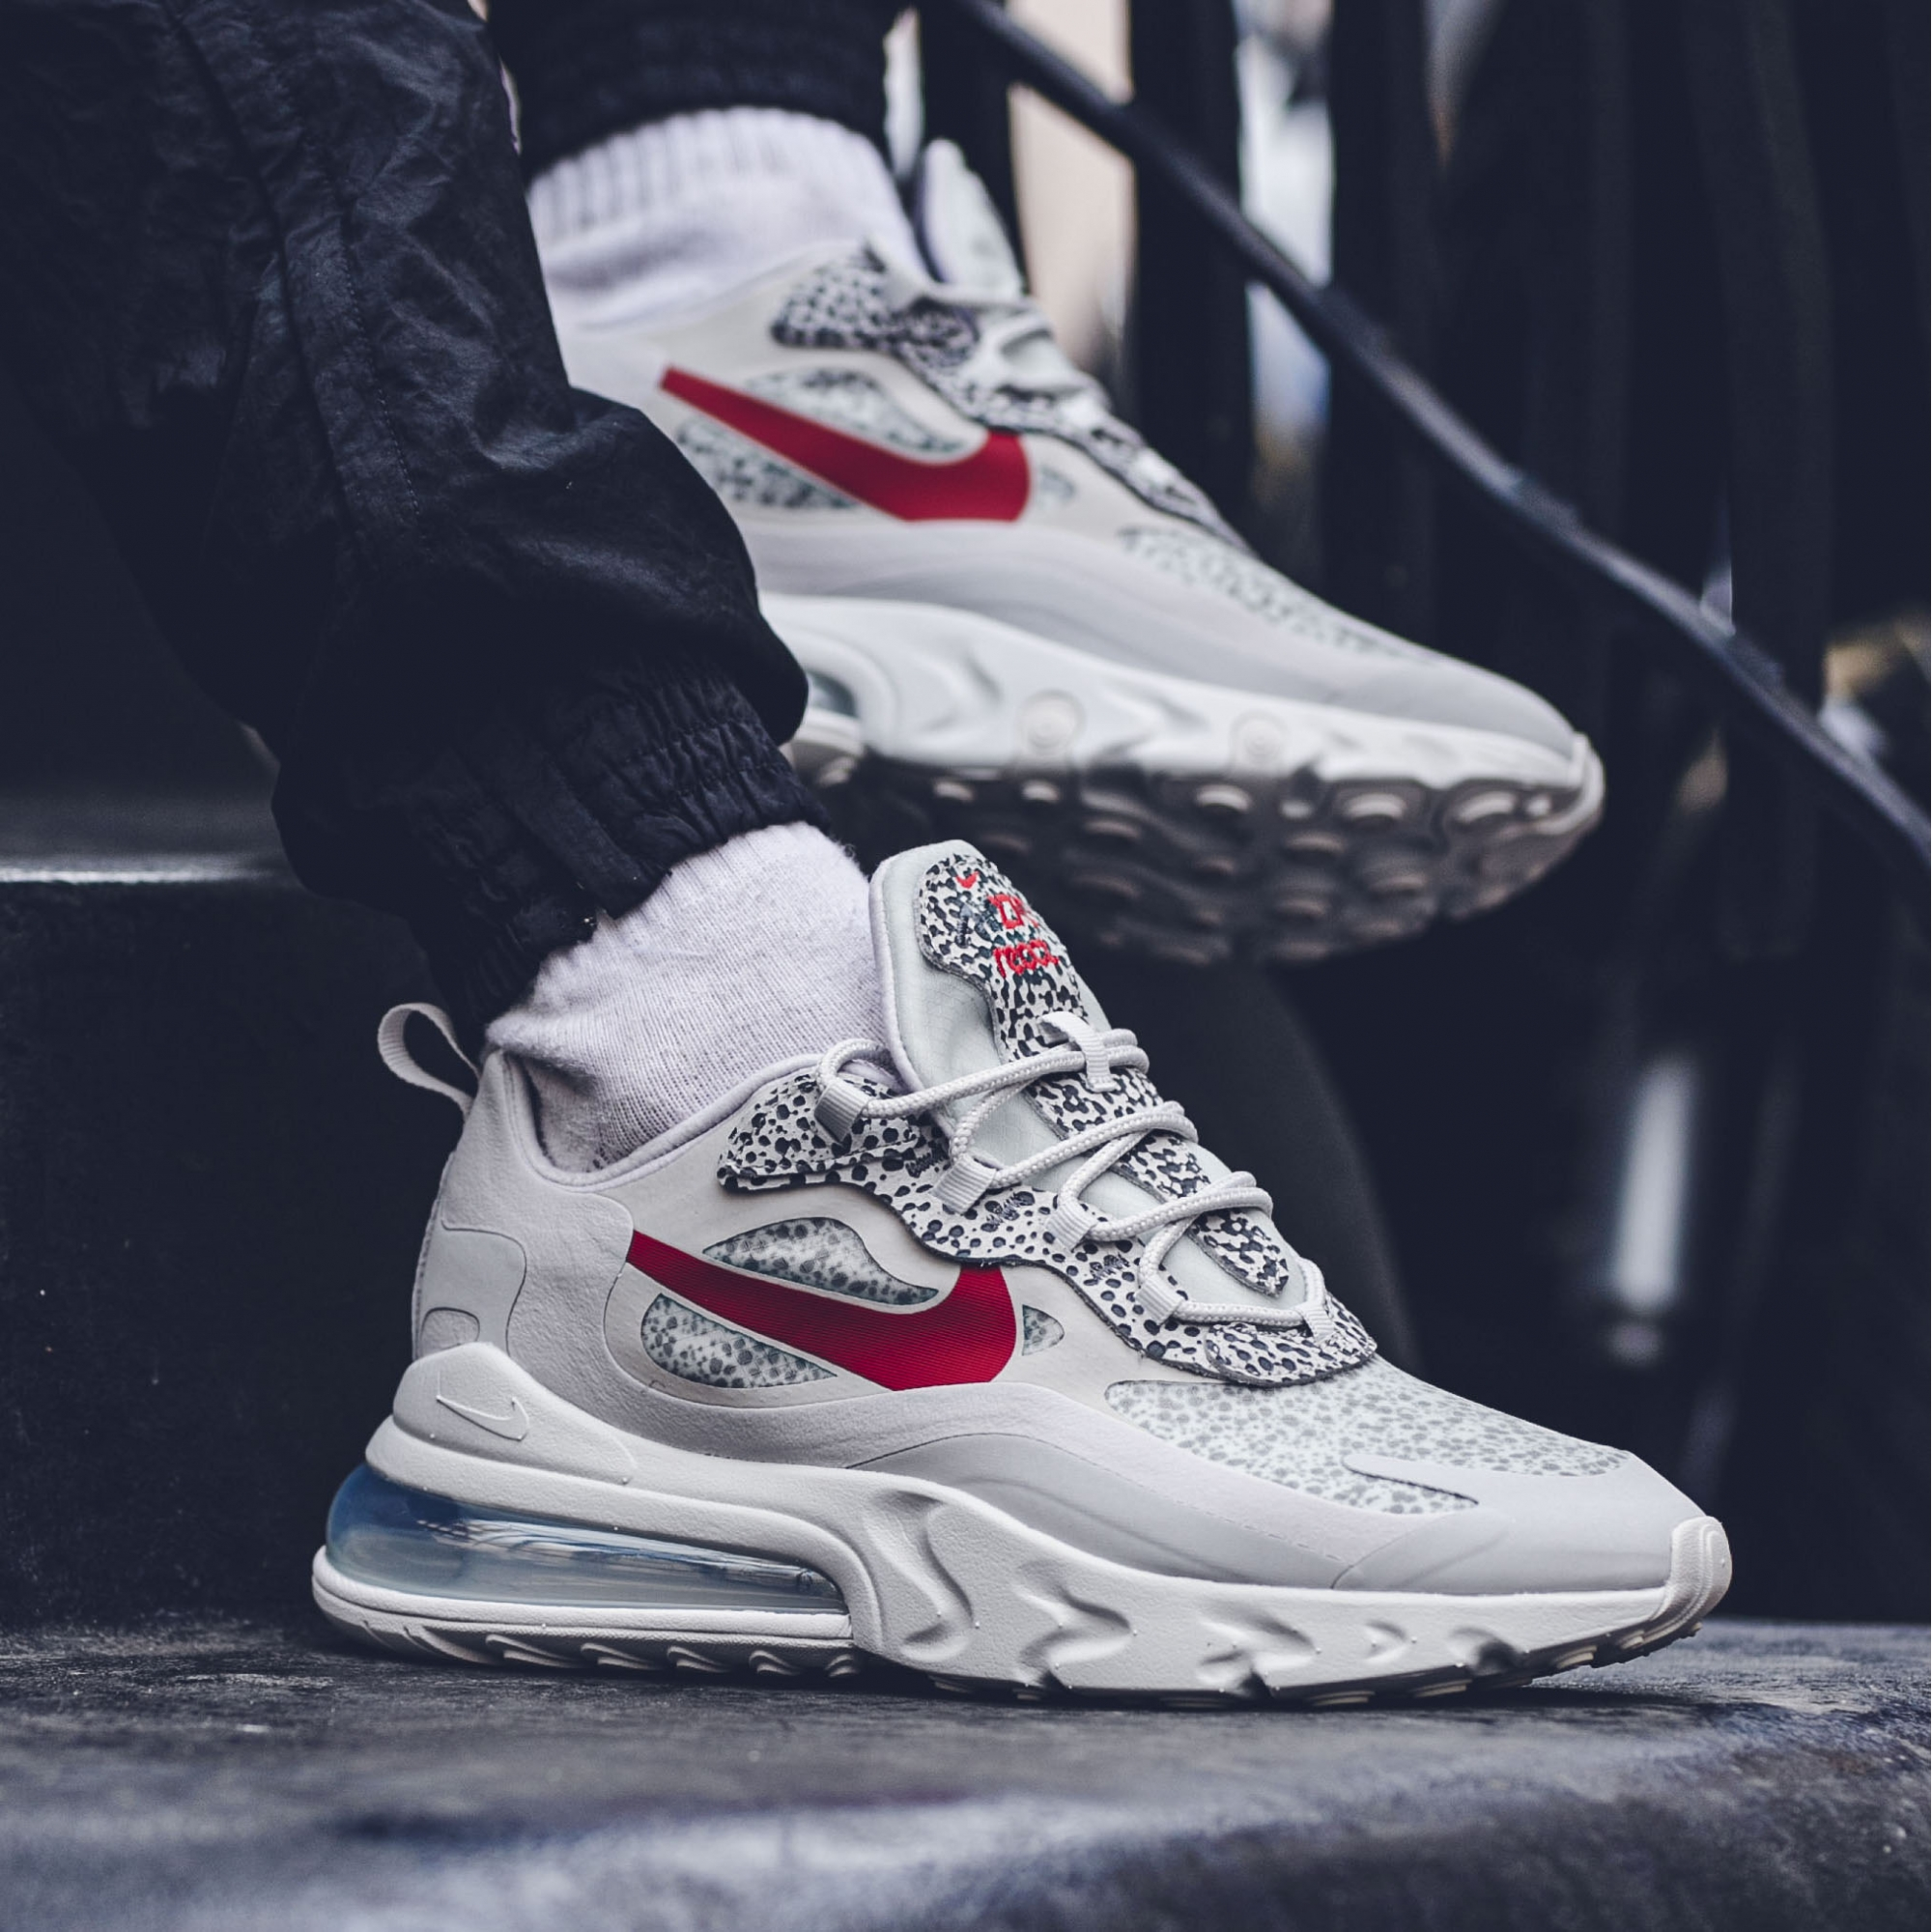 NIKE AIR MAX 270 REACT NEUTRAL GREYUNIVERSITY RED LT